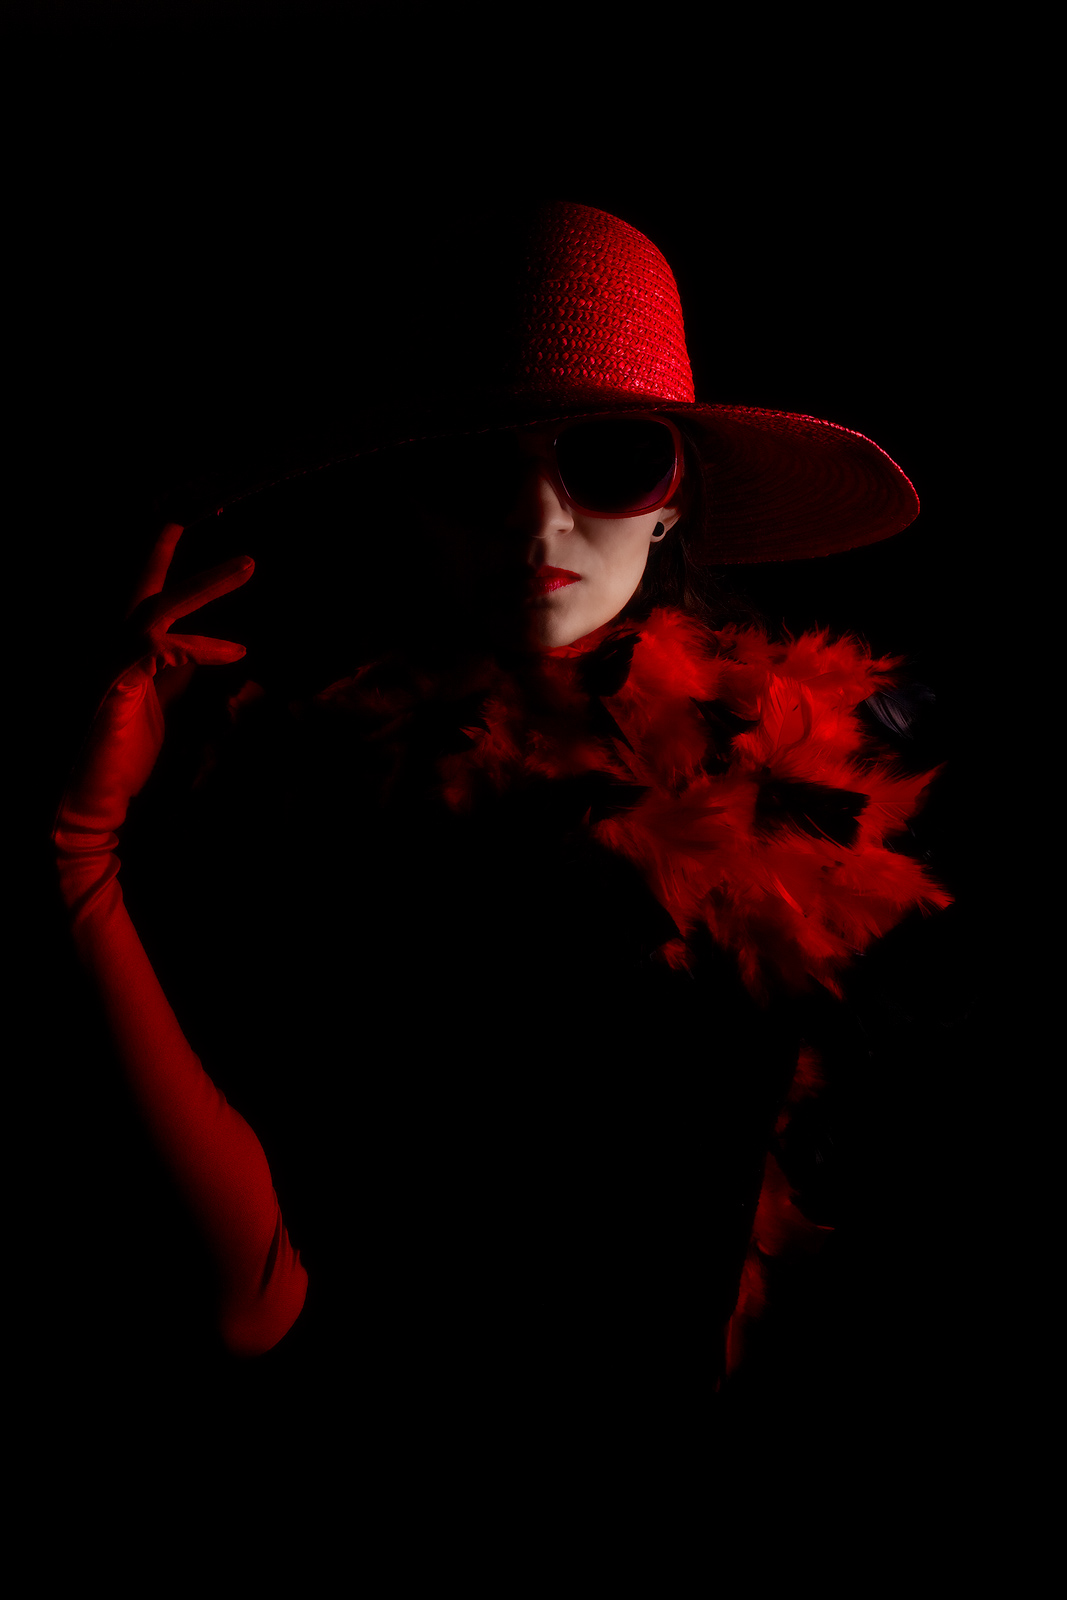 fashion,fashionable,female,glasses,hat,lady,mysterious,portrait,side-lighting,side-lit,studio,stylish,sunglasses,temptation,vertical,woman, photo